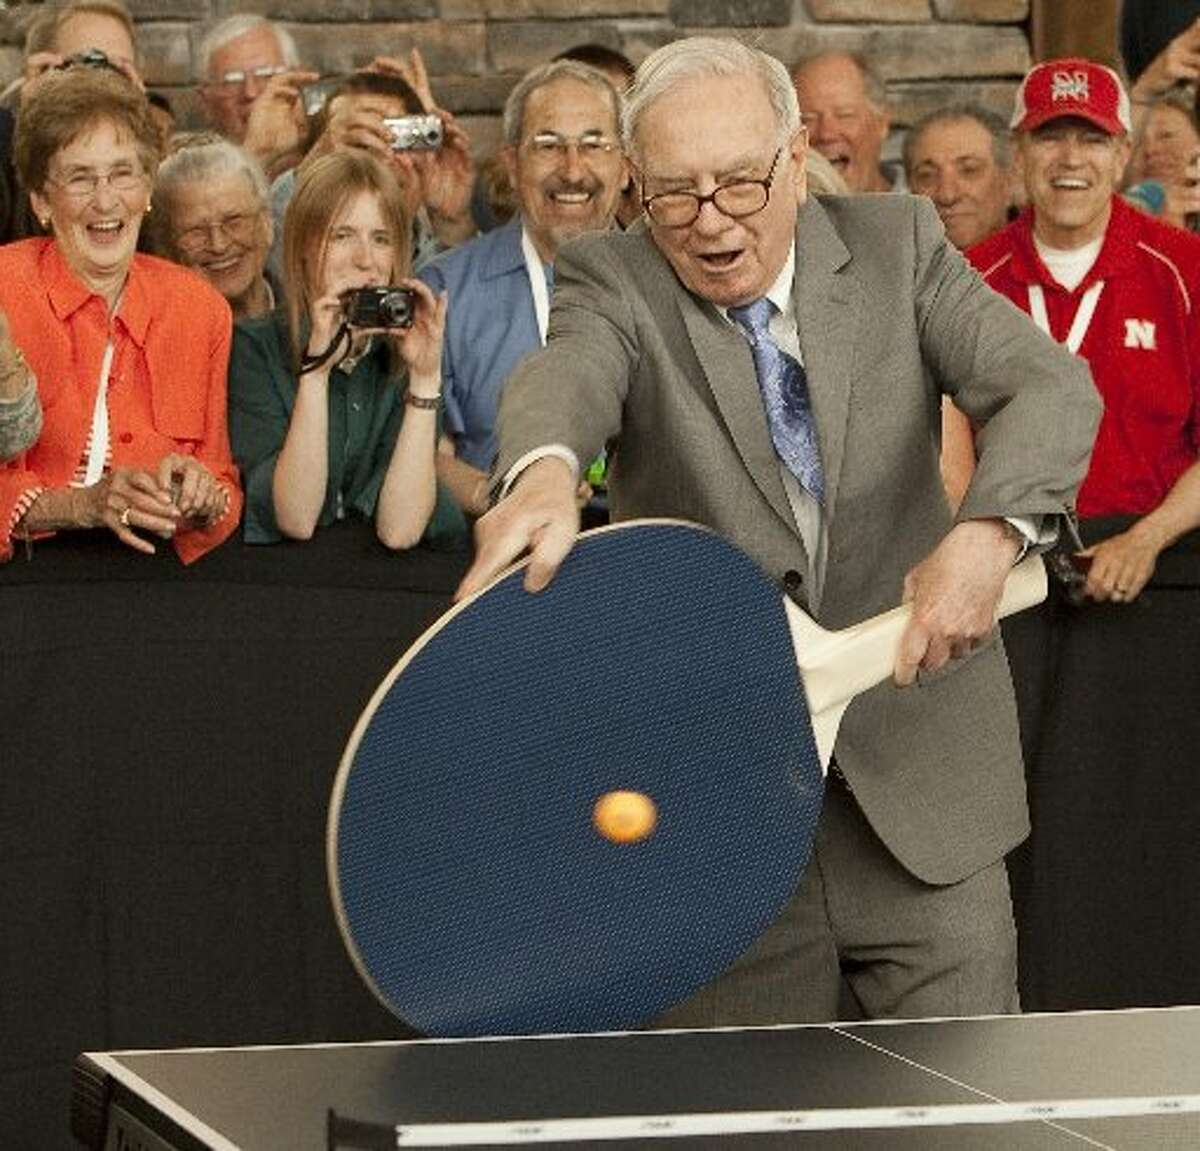 Borsheims Fine Jewelry Warren Buffett uses a super large paddle to play table tennis against junior champion Ariel Hsing, outside a Berkshire Hathaway-owned Borsheim's jewelry store in Omaha, Neb. in 2012.